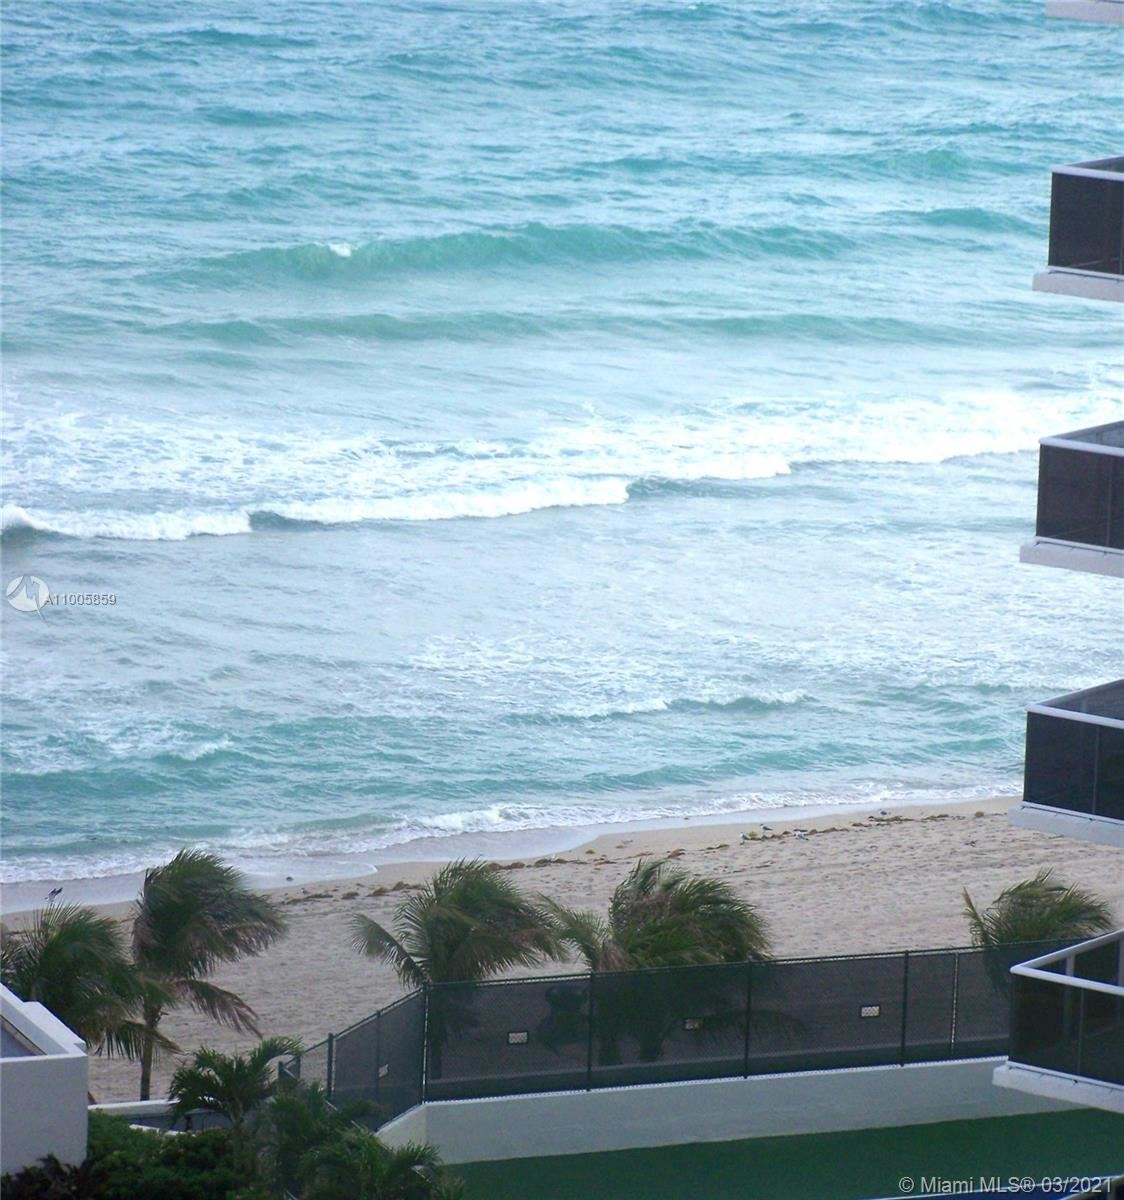 Photo of 19201 Collins Ave #1141, Sunny Isles Beach, FL 33160 (MLS # A11005859)